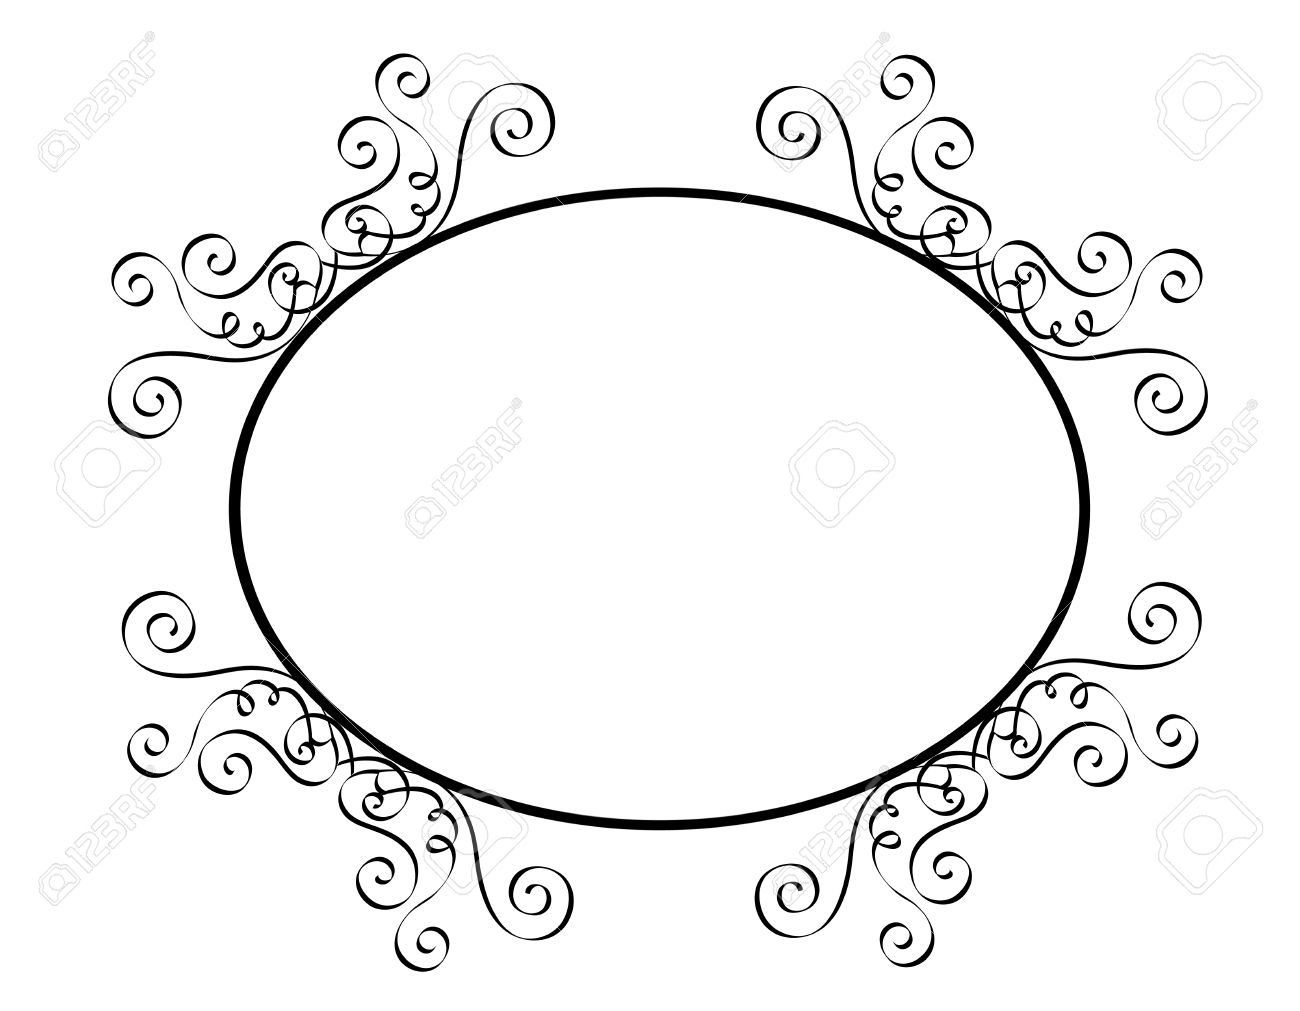 Black and white ornamental oval border frame specially for black and white ornamental oval border frame specially for wedding party invitation cards stock stopboris Image collections